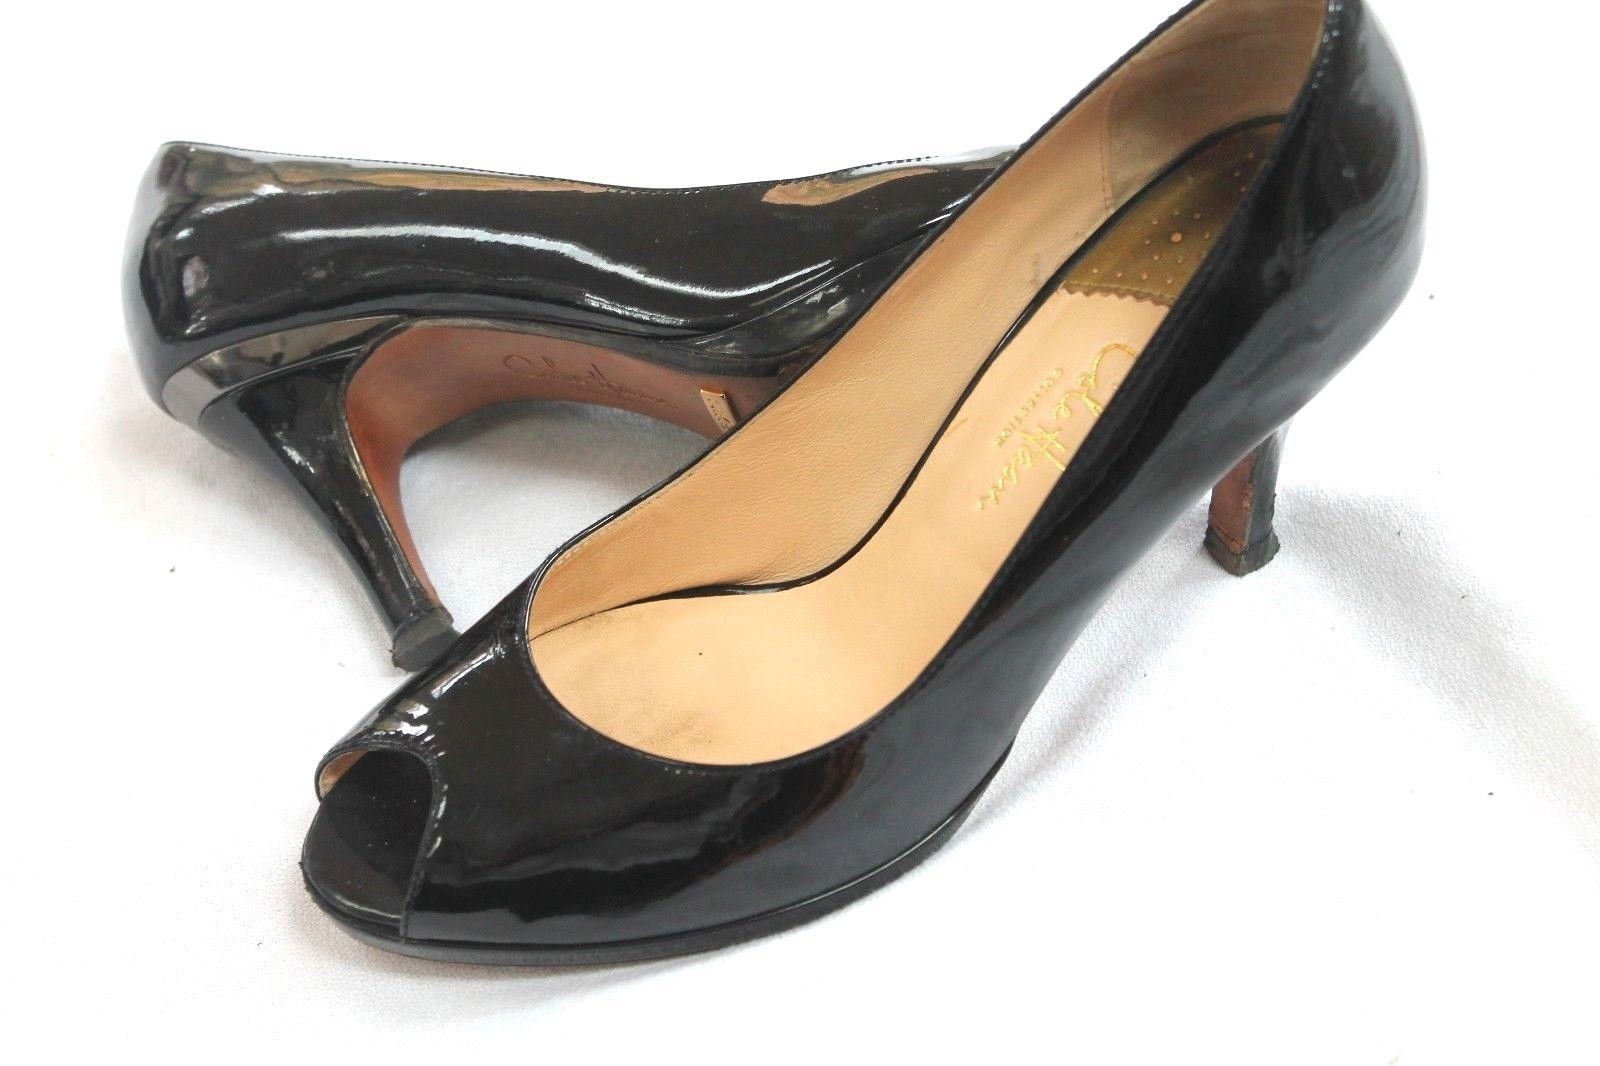 b2fe831bf4c COLE HAAN Black Patent Leather Peep Toe and similar items. 57